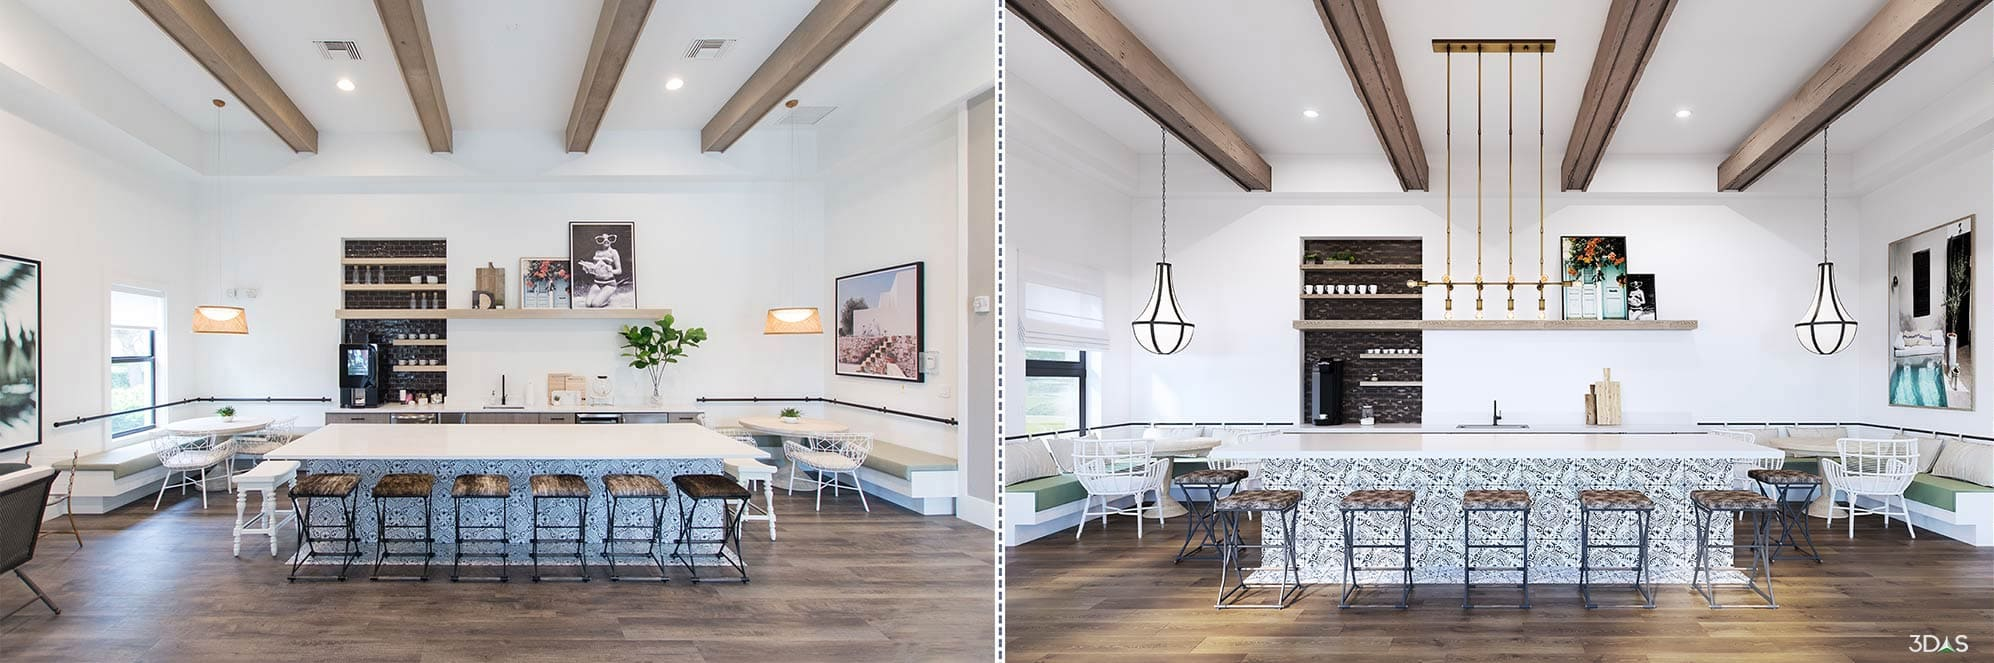 3D Rendering or Photo - Which is the Better One Boynton Beach Kitchen Interior?